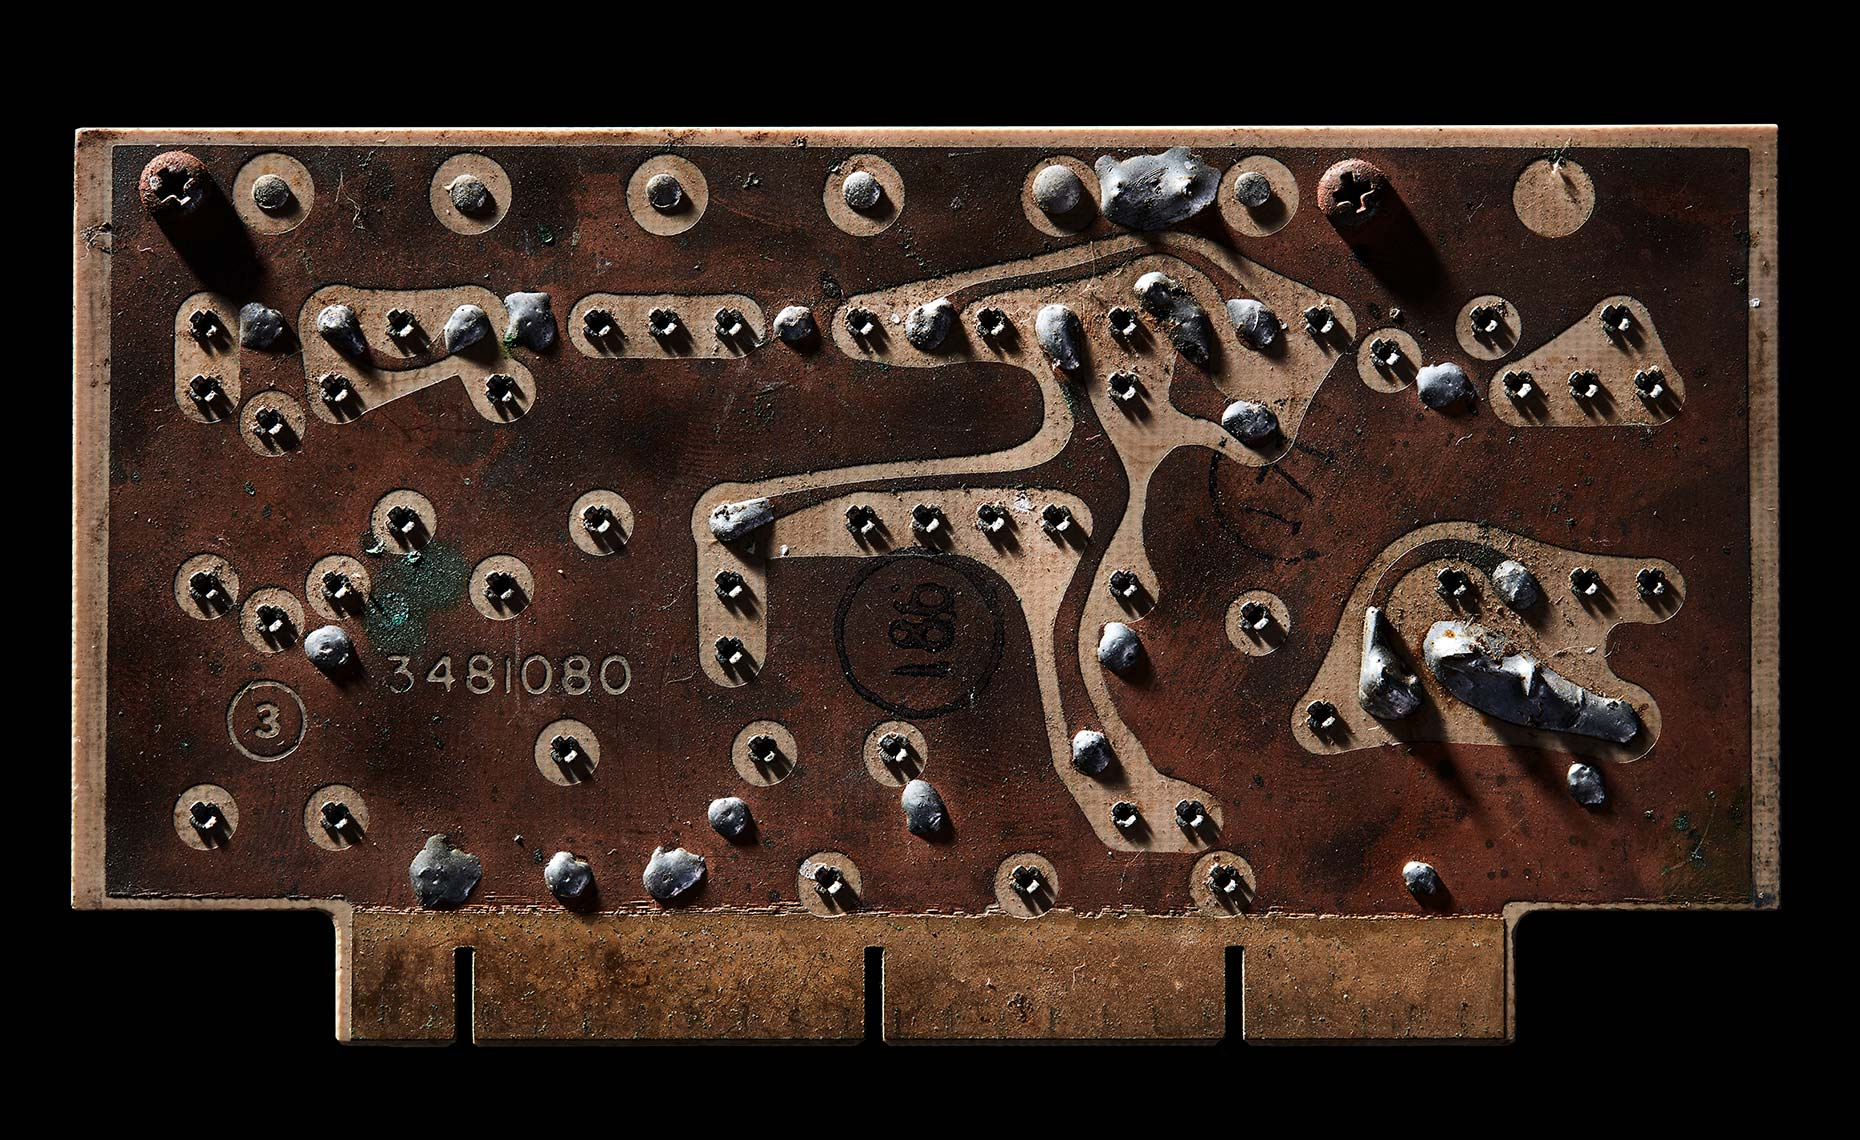 Macro photography of a simple antique circuit board